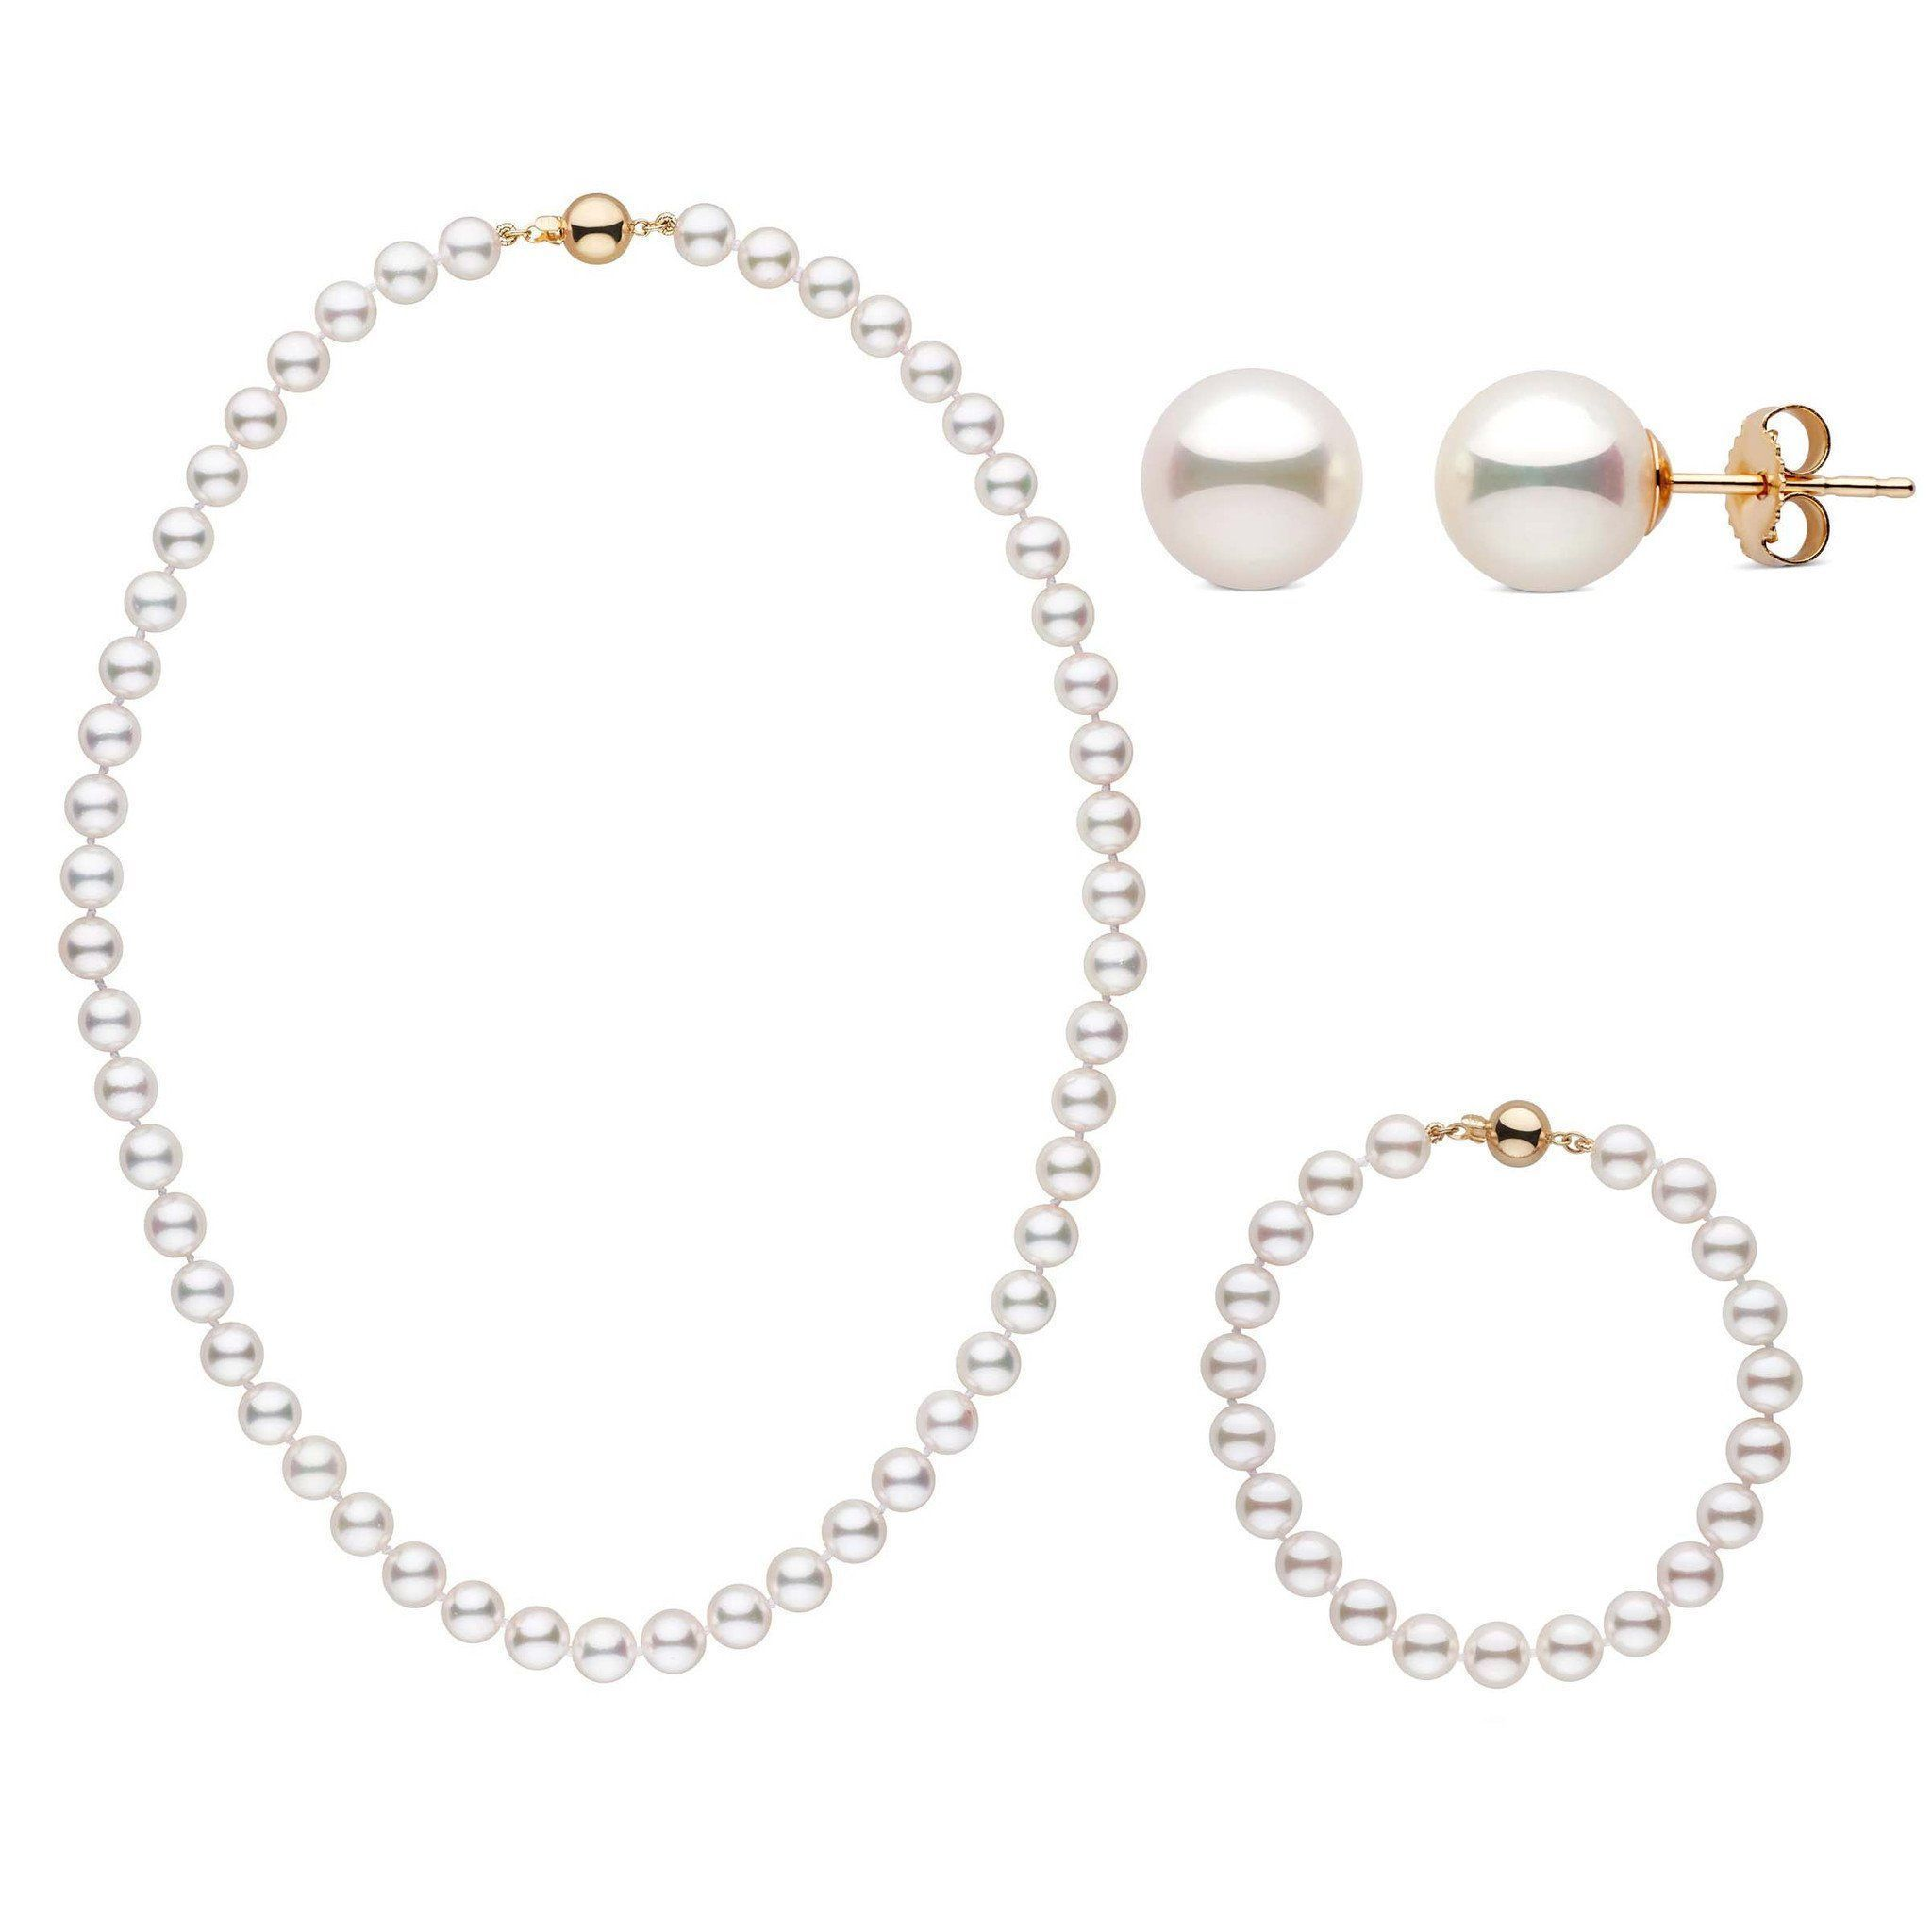 16 Inch 3 Piece Set of 7.5-8.0 mm AAA White Akoya Pearls